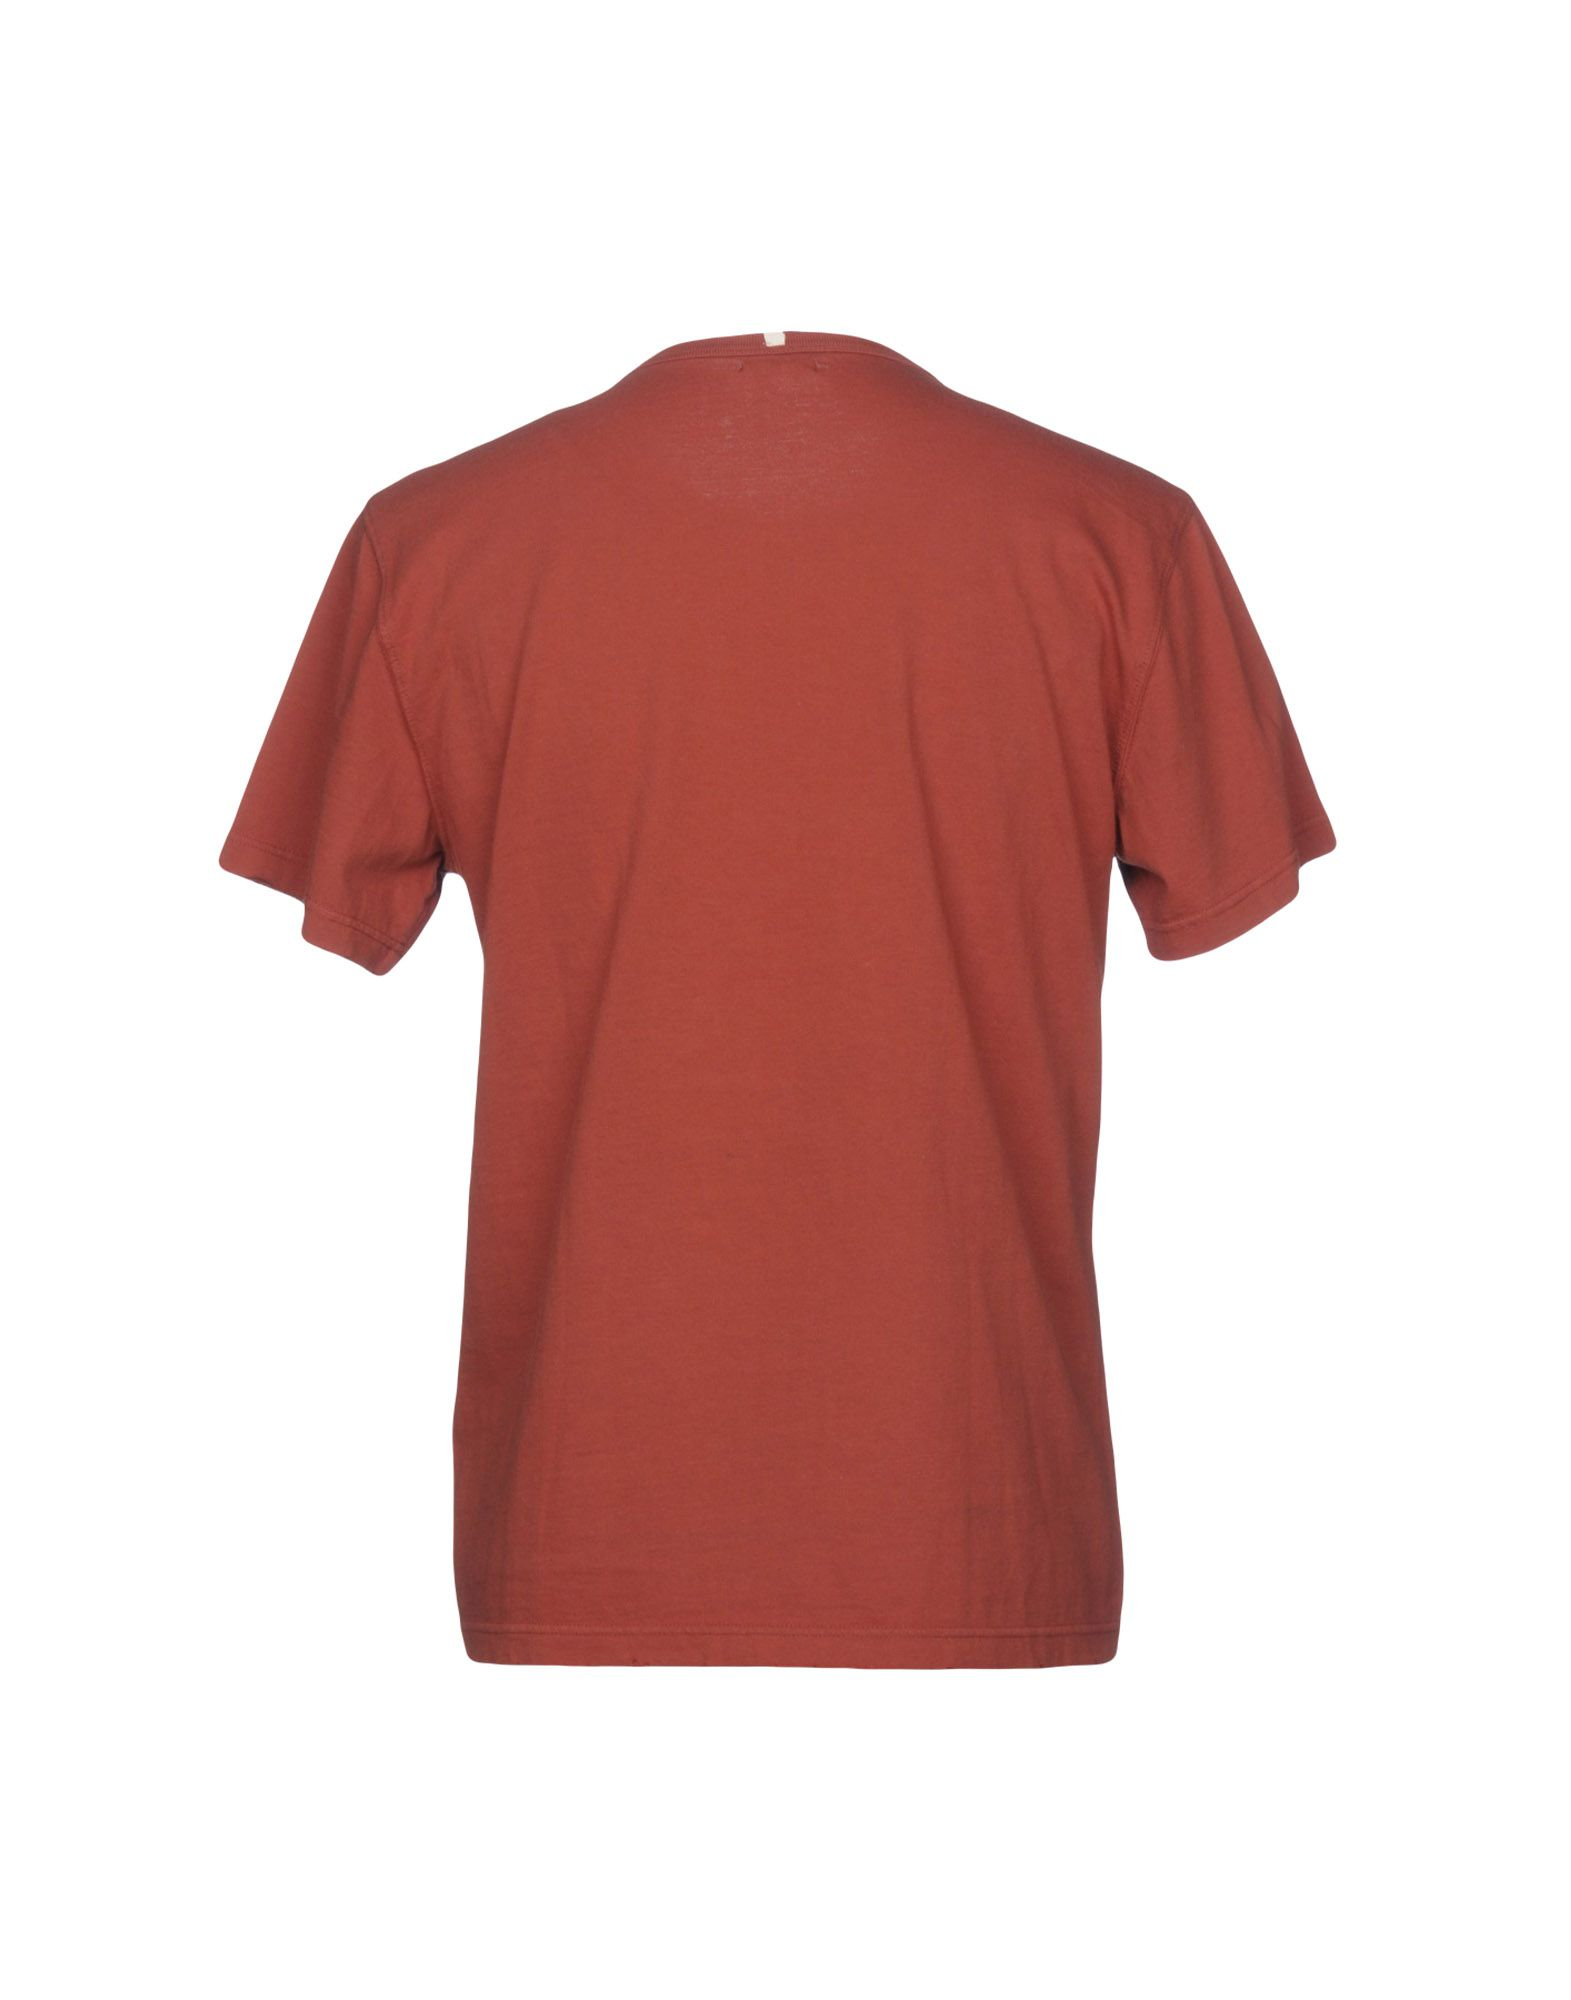 T-Shirt (+) Uomo People Uomo (+) - 12170176WE 68a4a1